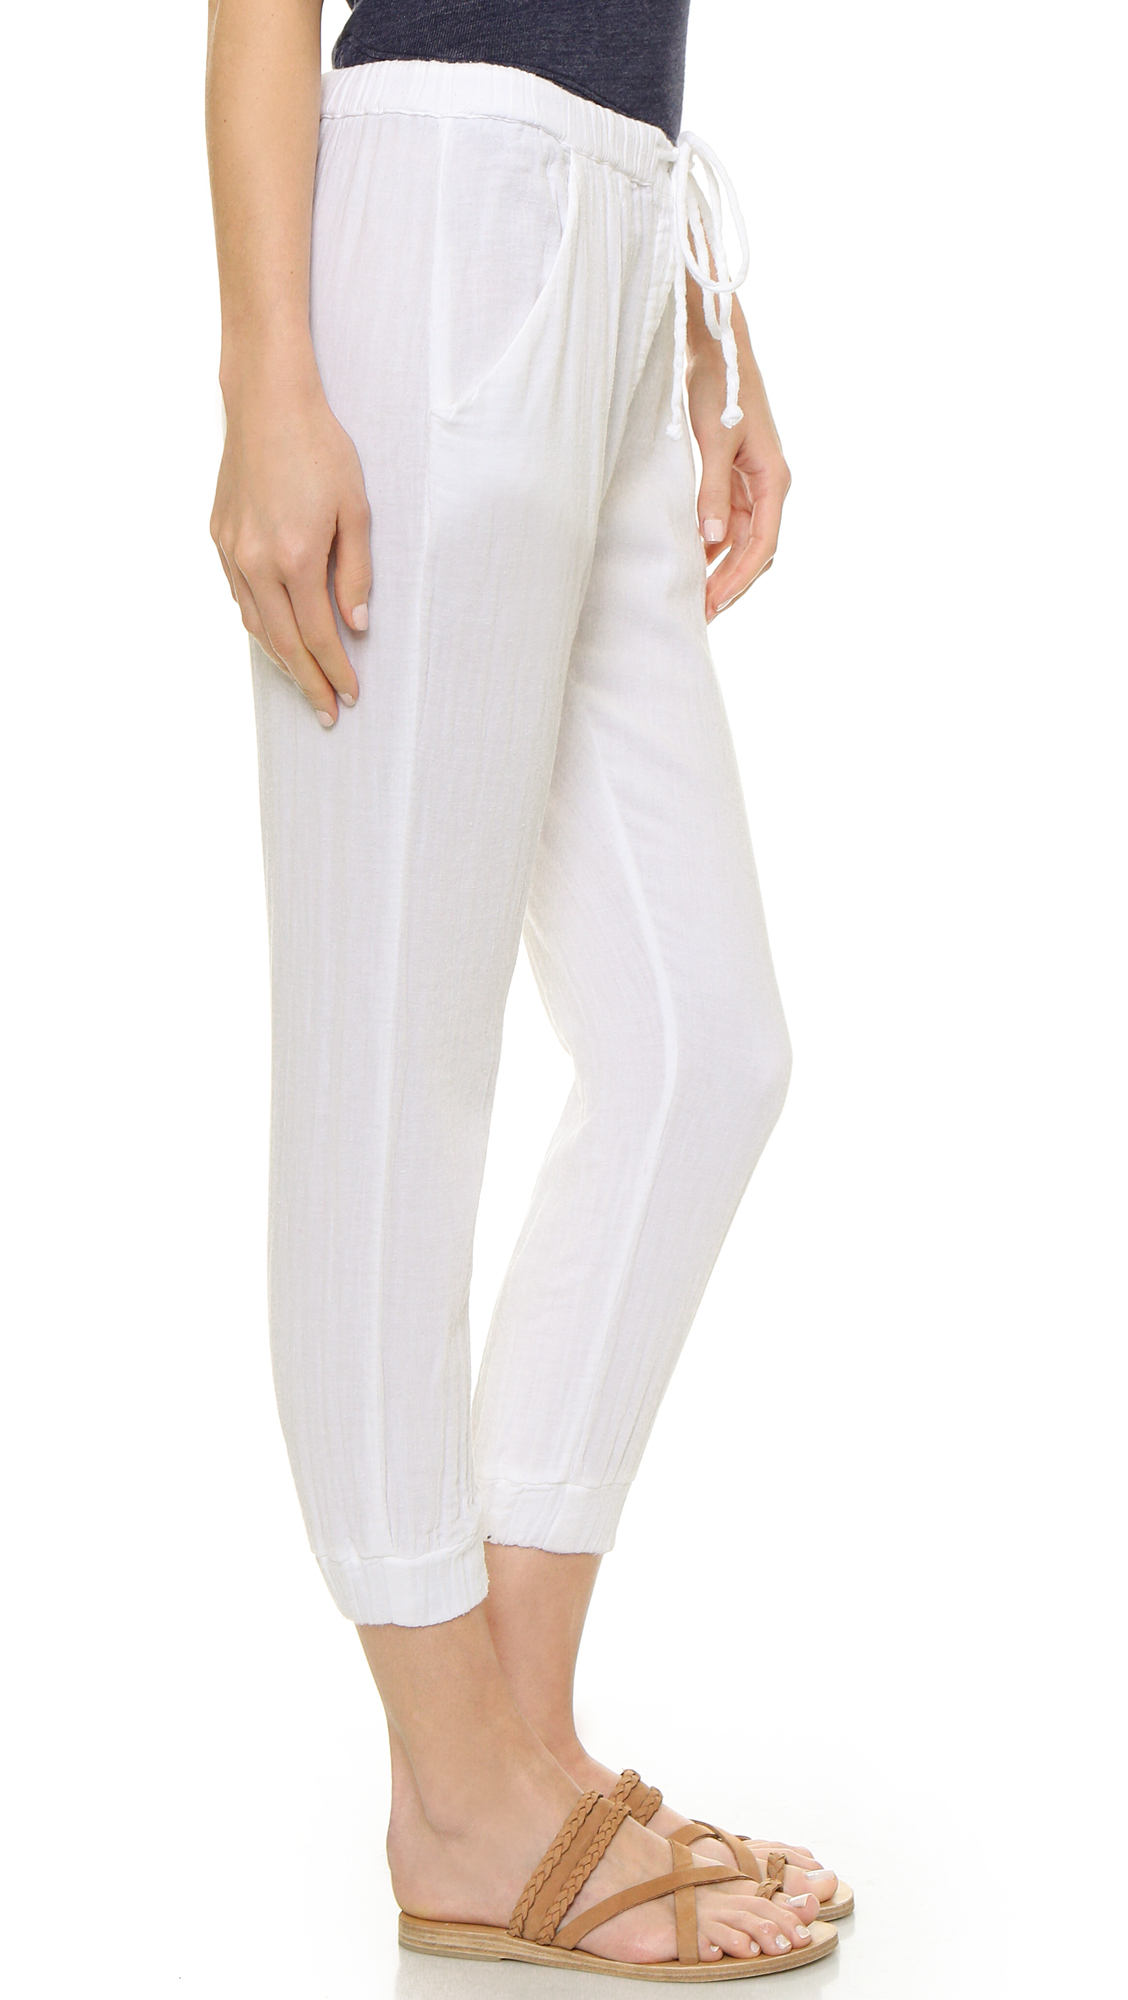 Sundry Gauze Beach Pants - White in White | Lyst